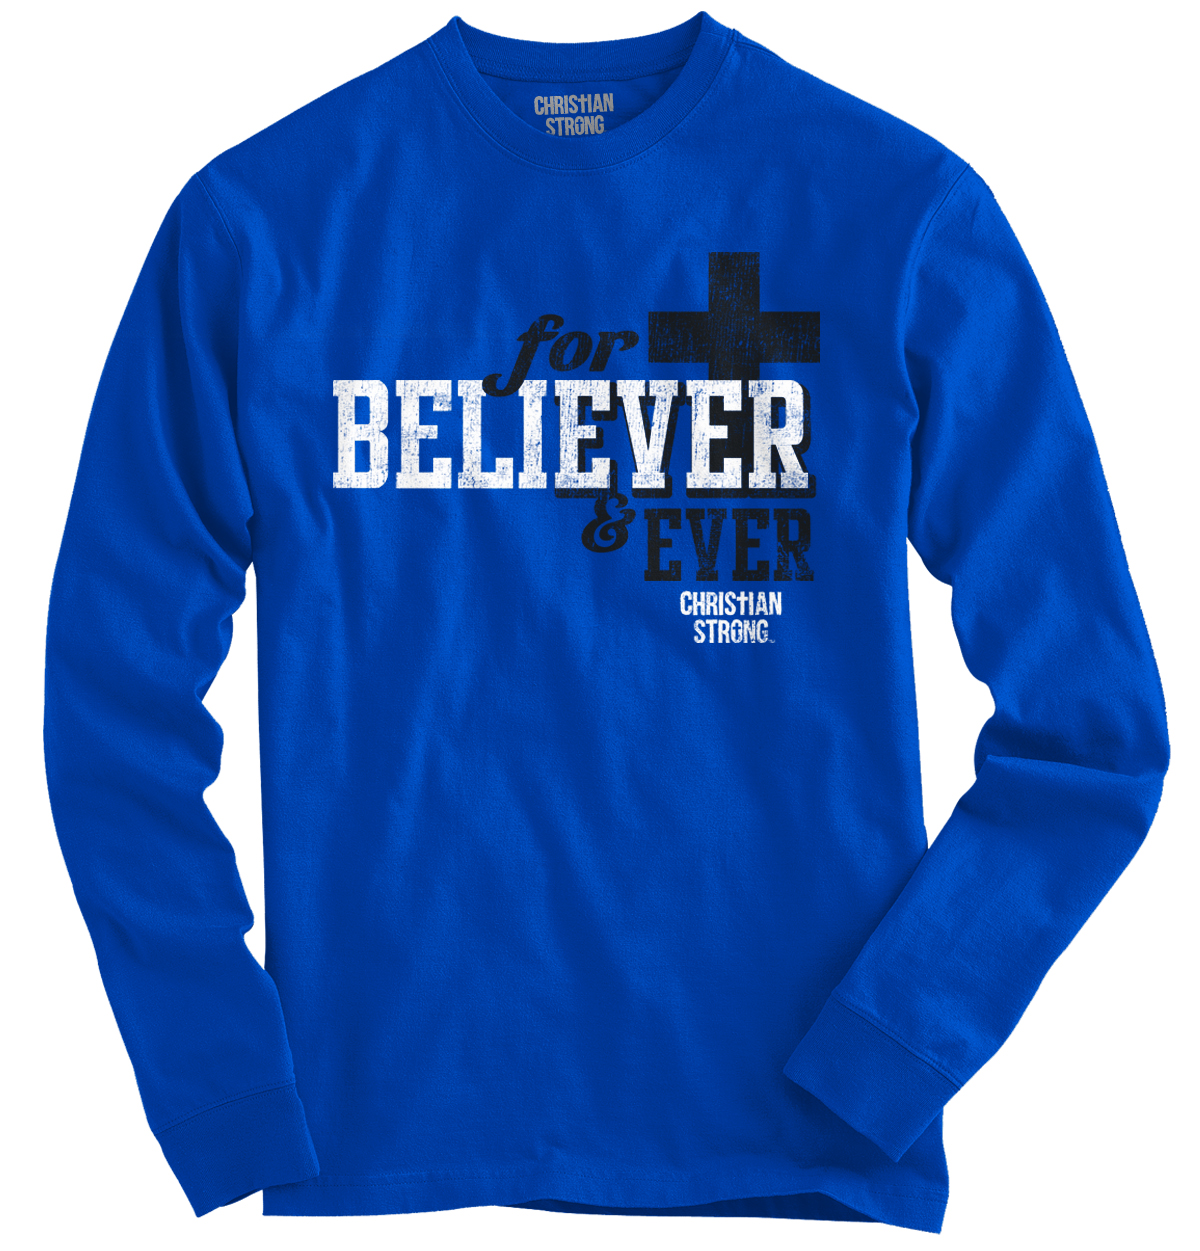 Believer Forever Christian Shirt Cool Jesus Christ Religious Long Sleeve Tee